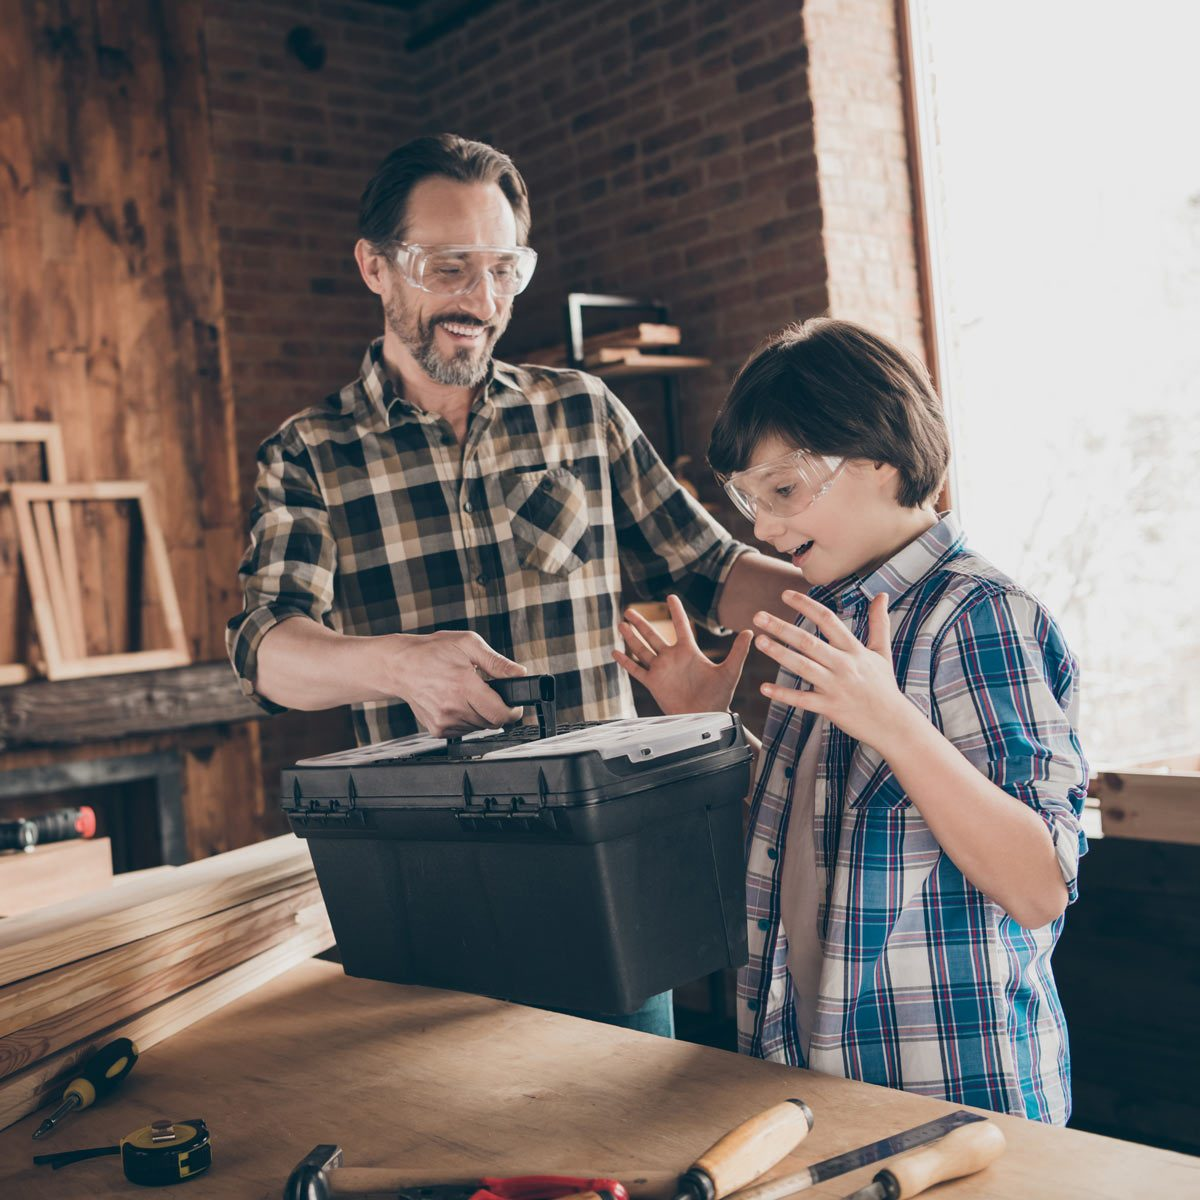 woodworkers master handyman dad giving new toolkit to son surprised